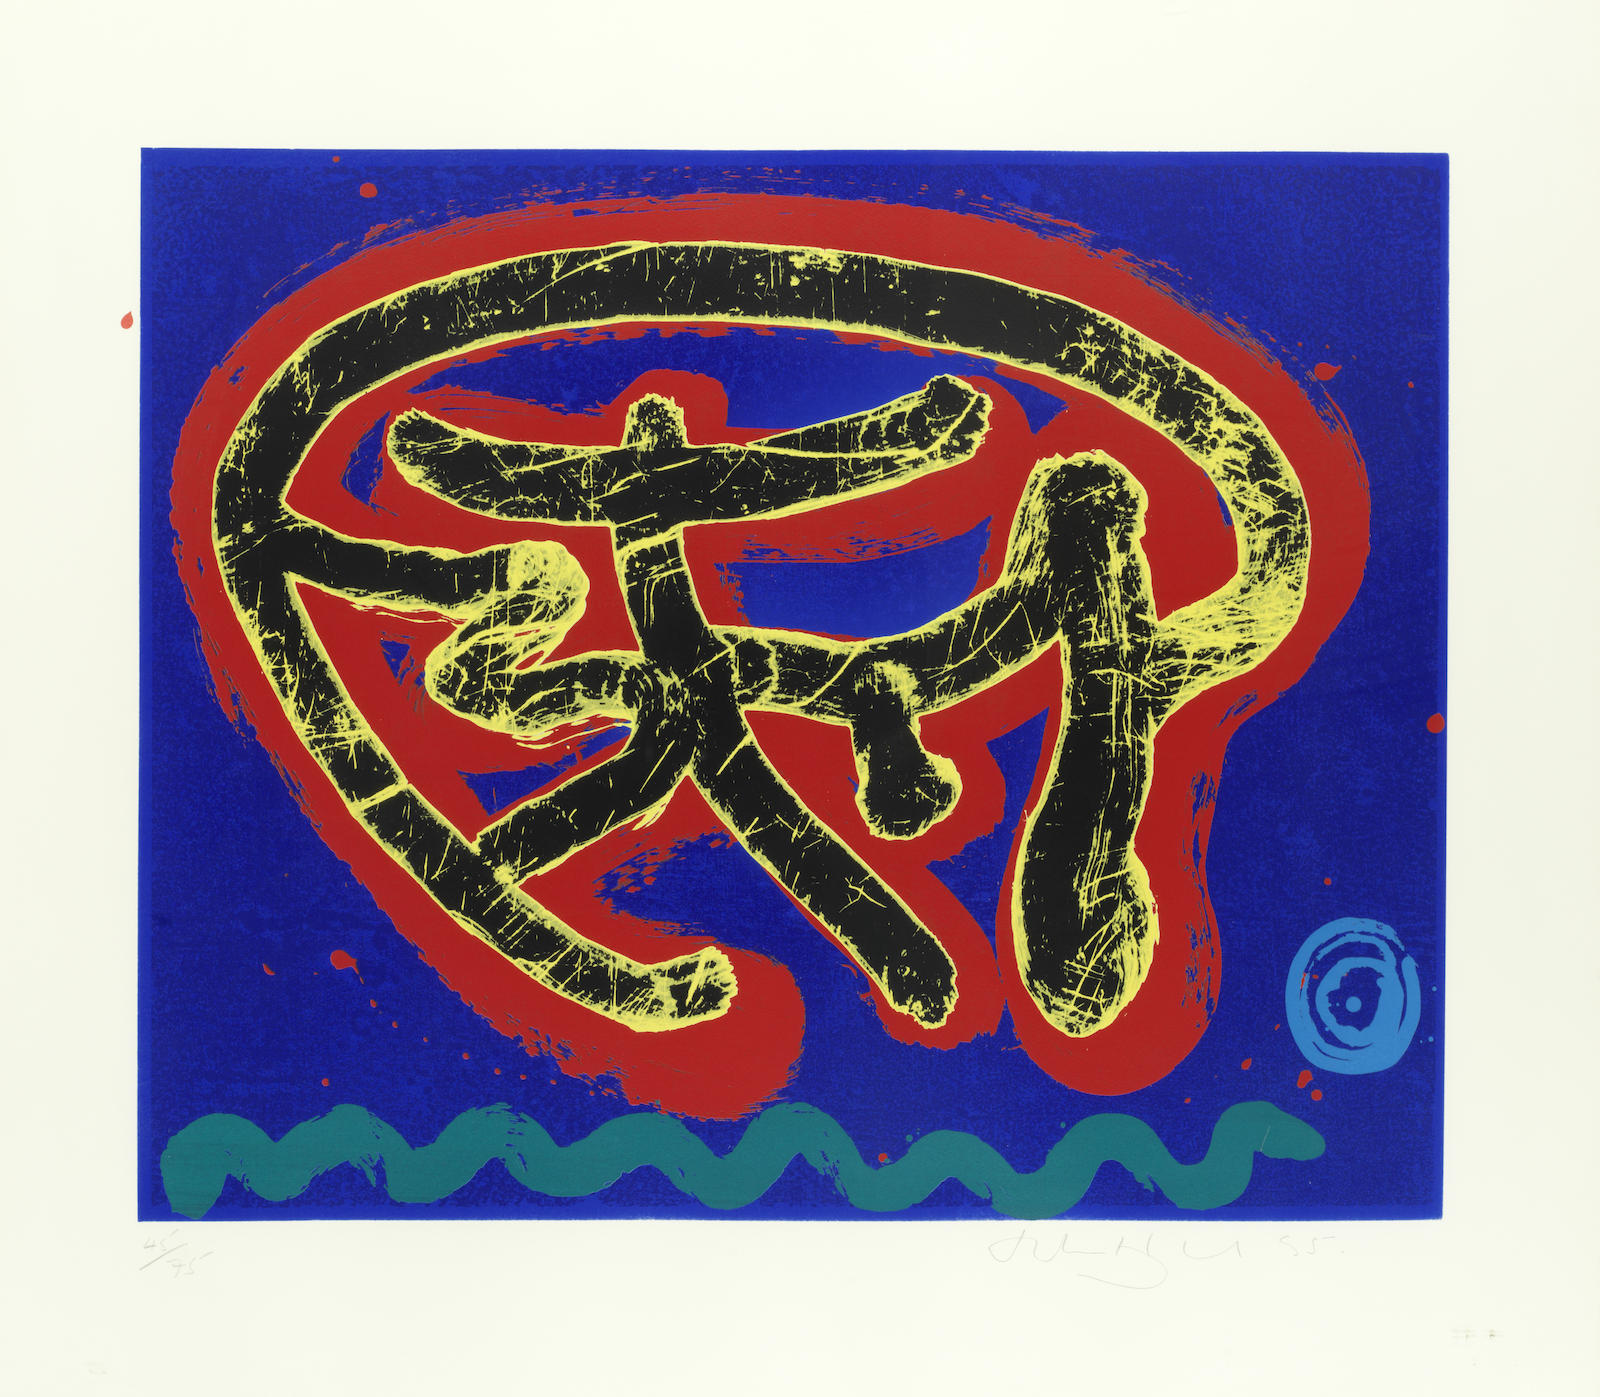 John Hoyland-'Wonderer' (Black Swirl on Red and Blue; Black Swirl on Green and Red)-1995